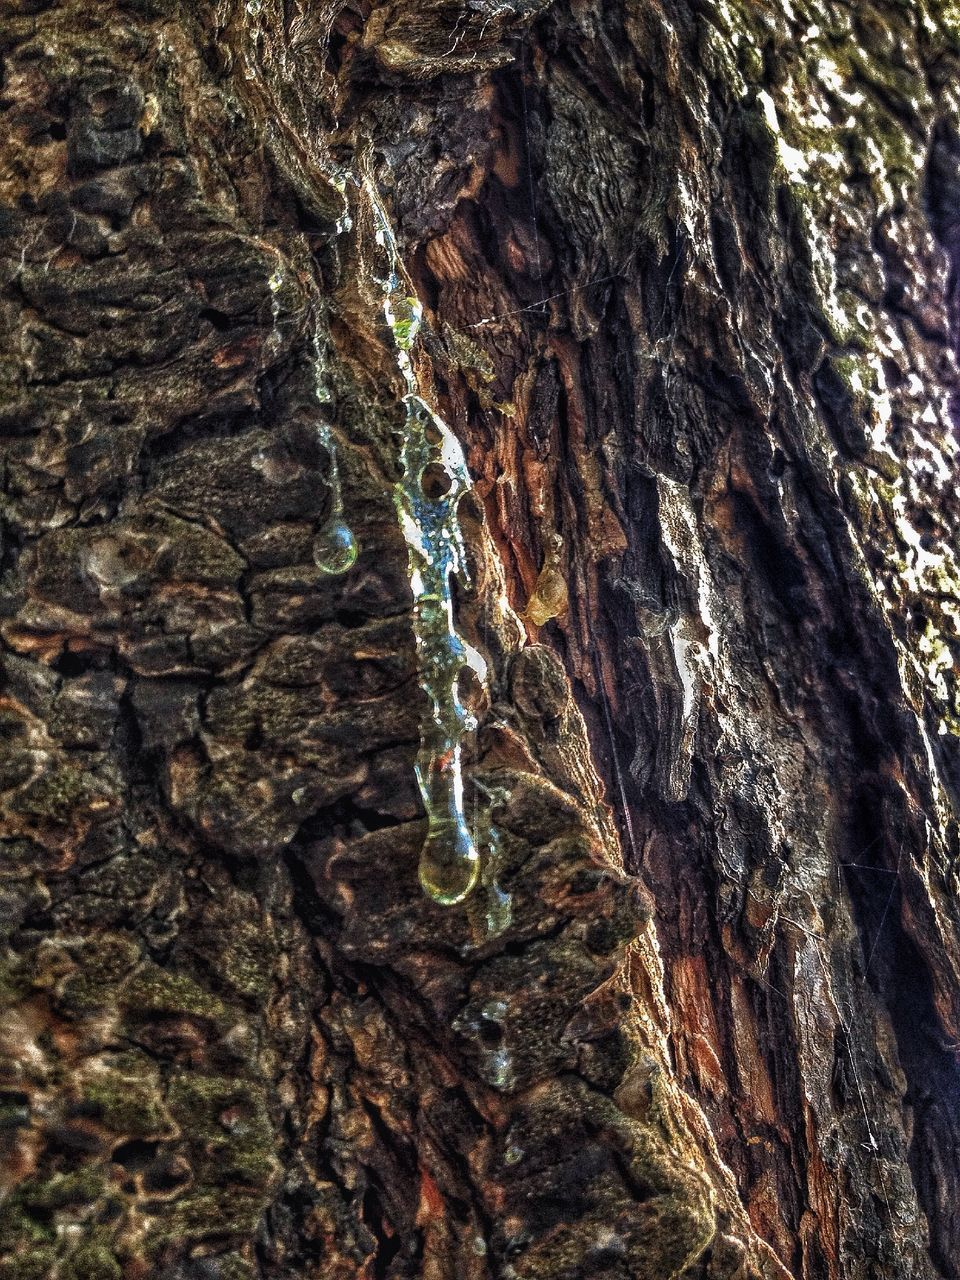 textured, tree trunk, rough, close-up, no people, chain, day, bark, tree, full frame, outdoors, nature, water